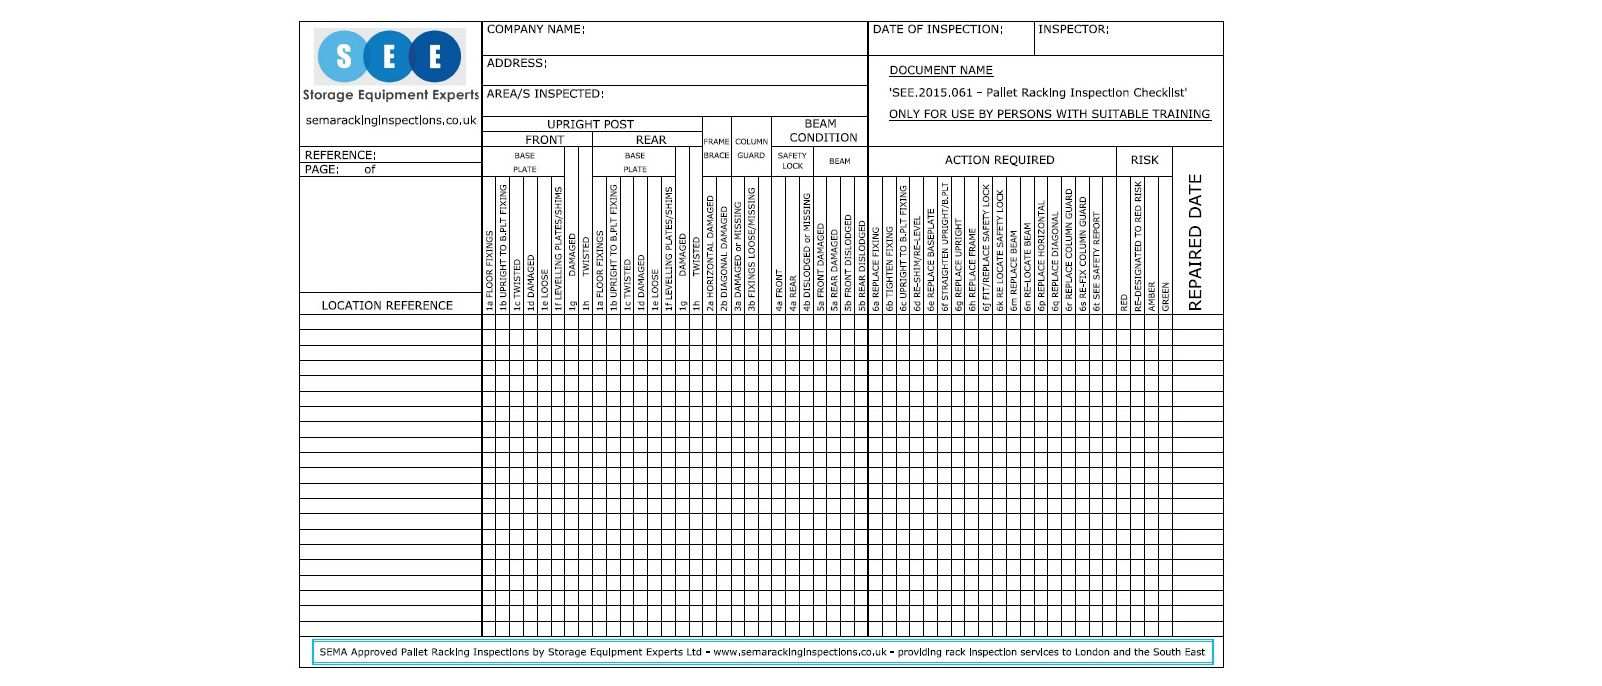 Puwer Risk Assessment Spreadsheet throughout Get A Free Racking Inspection Checklist  Sema Approved Racking